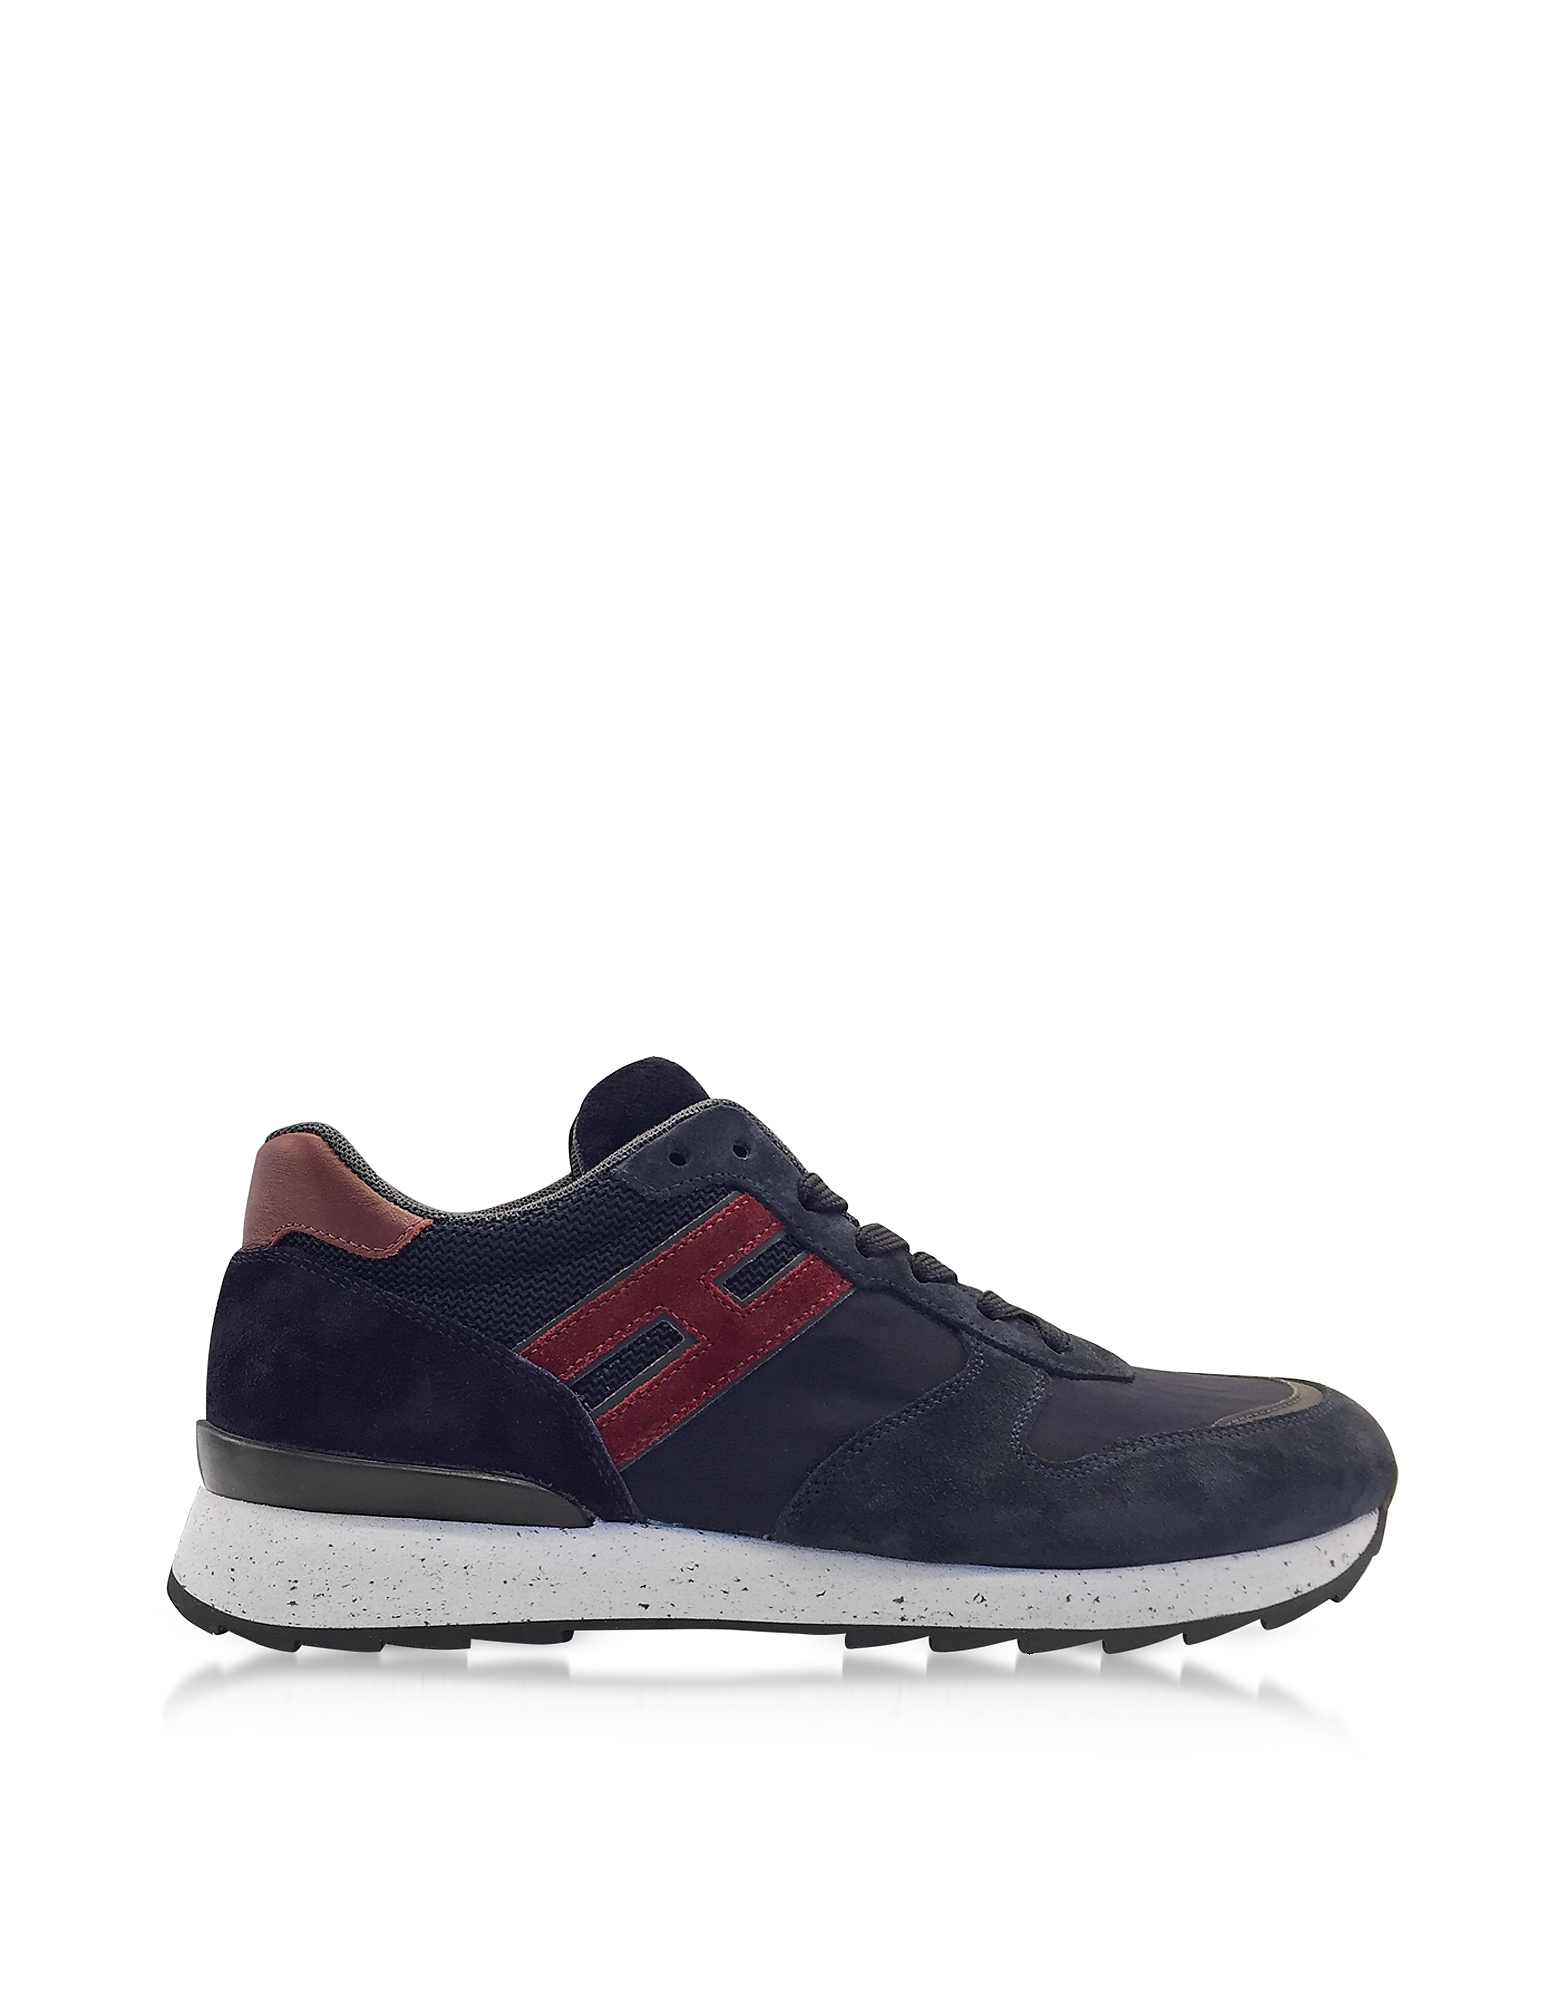 Hogan Shoes, R261 Running Blue Suede and High-tech Net Fabric Sneakers